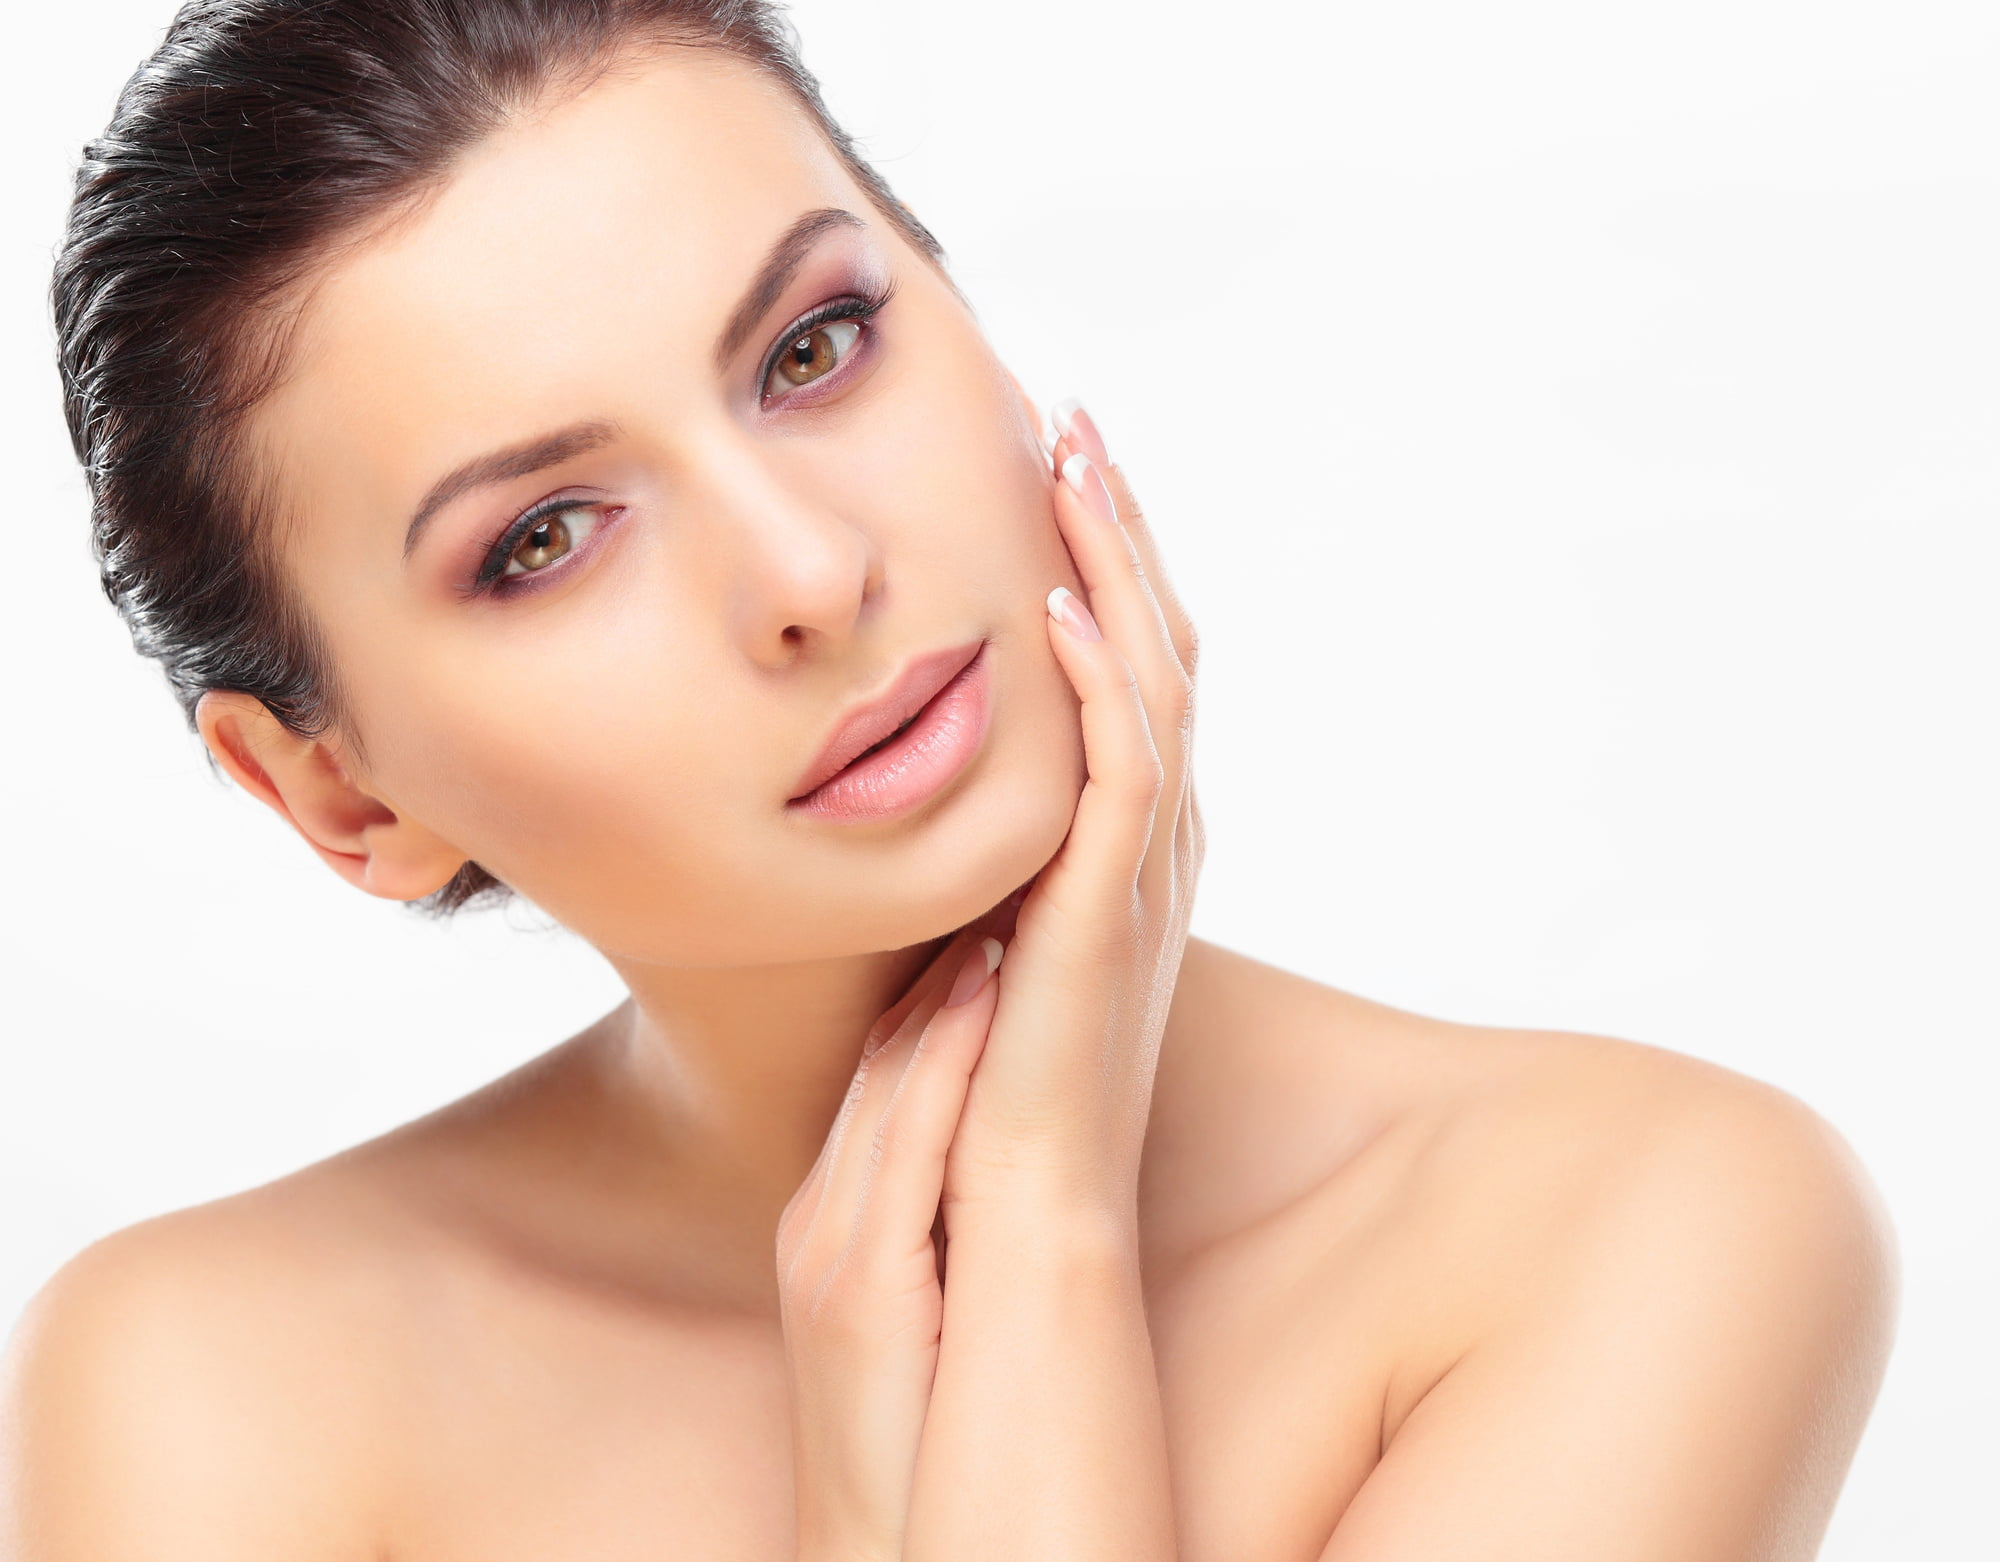 6 Daily Skincare Routines to Minimize Ageing